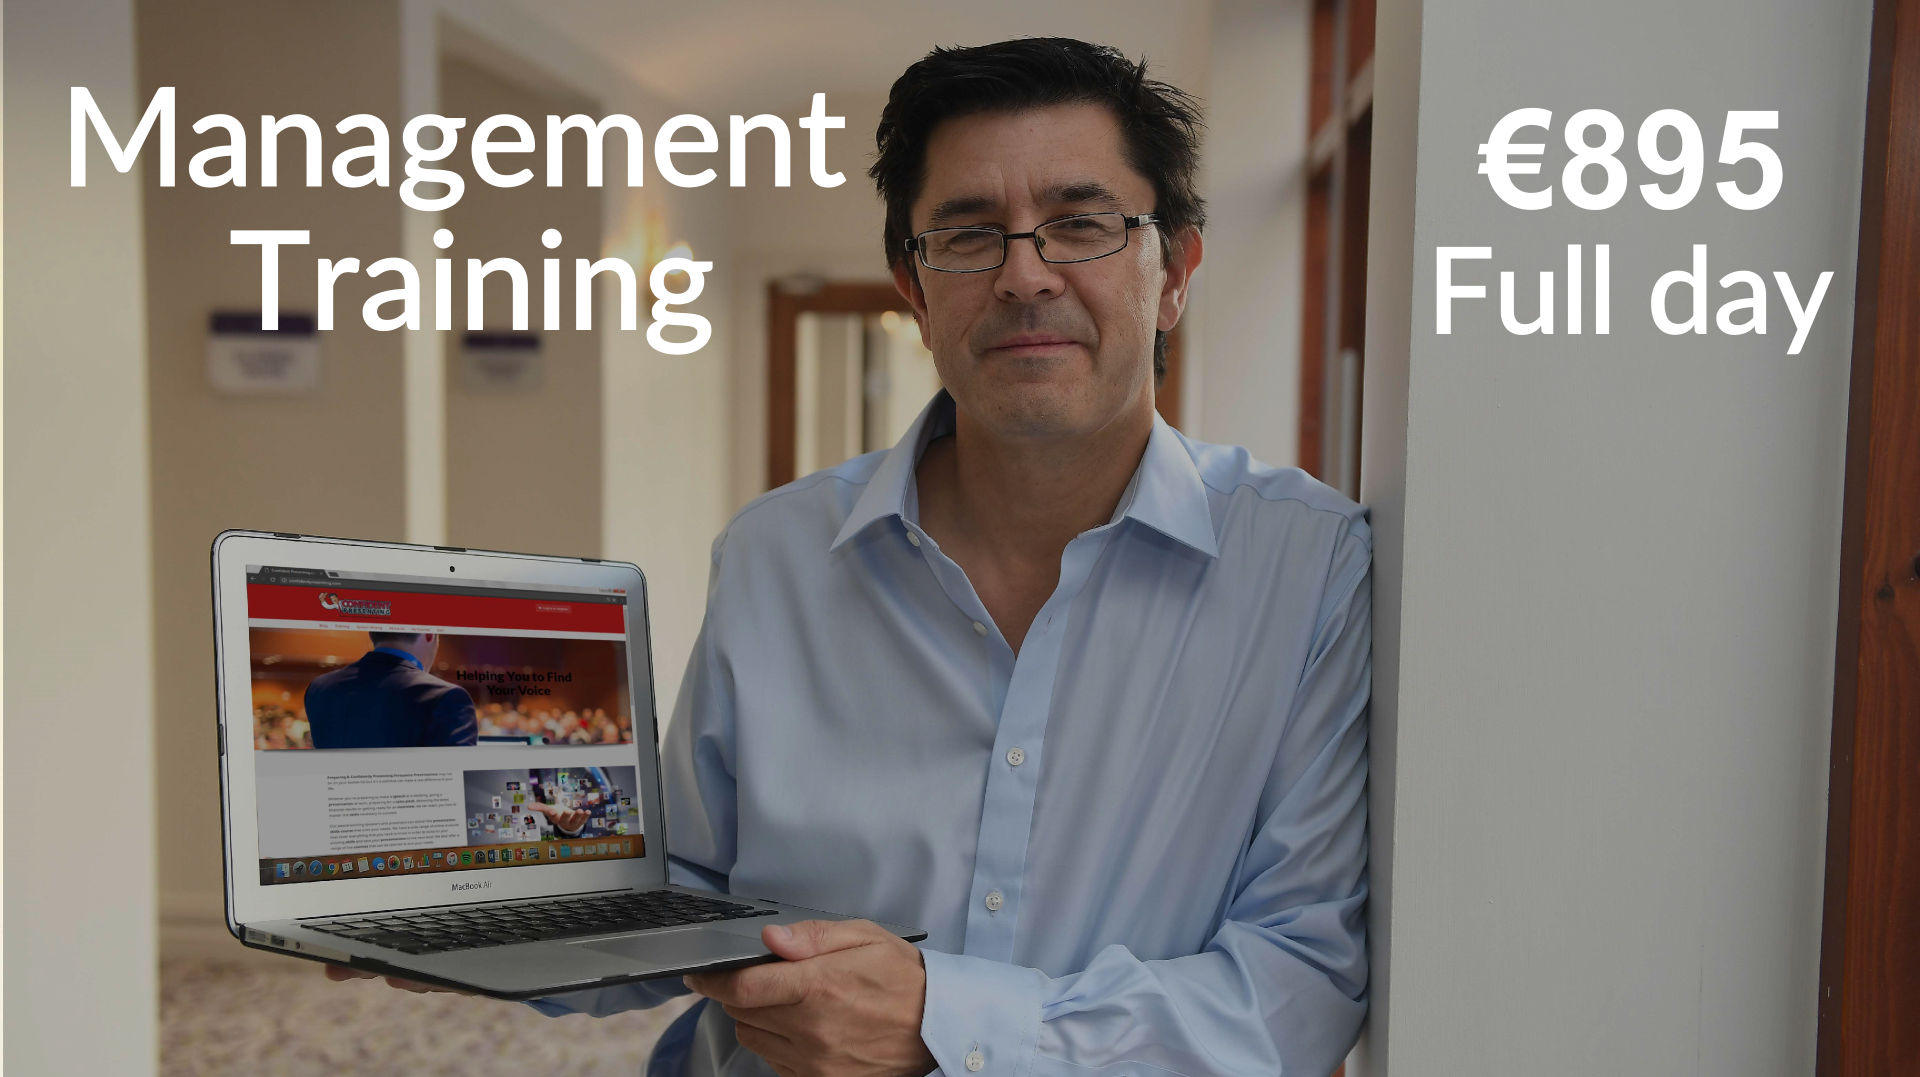 Management Training, Management Courses.